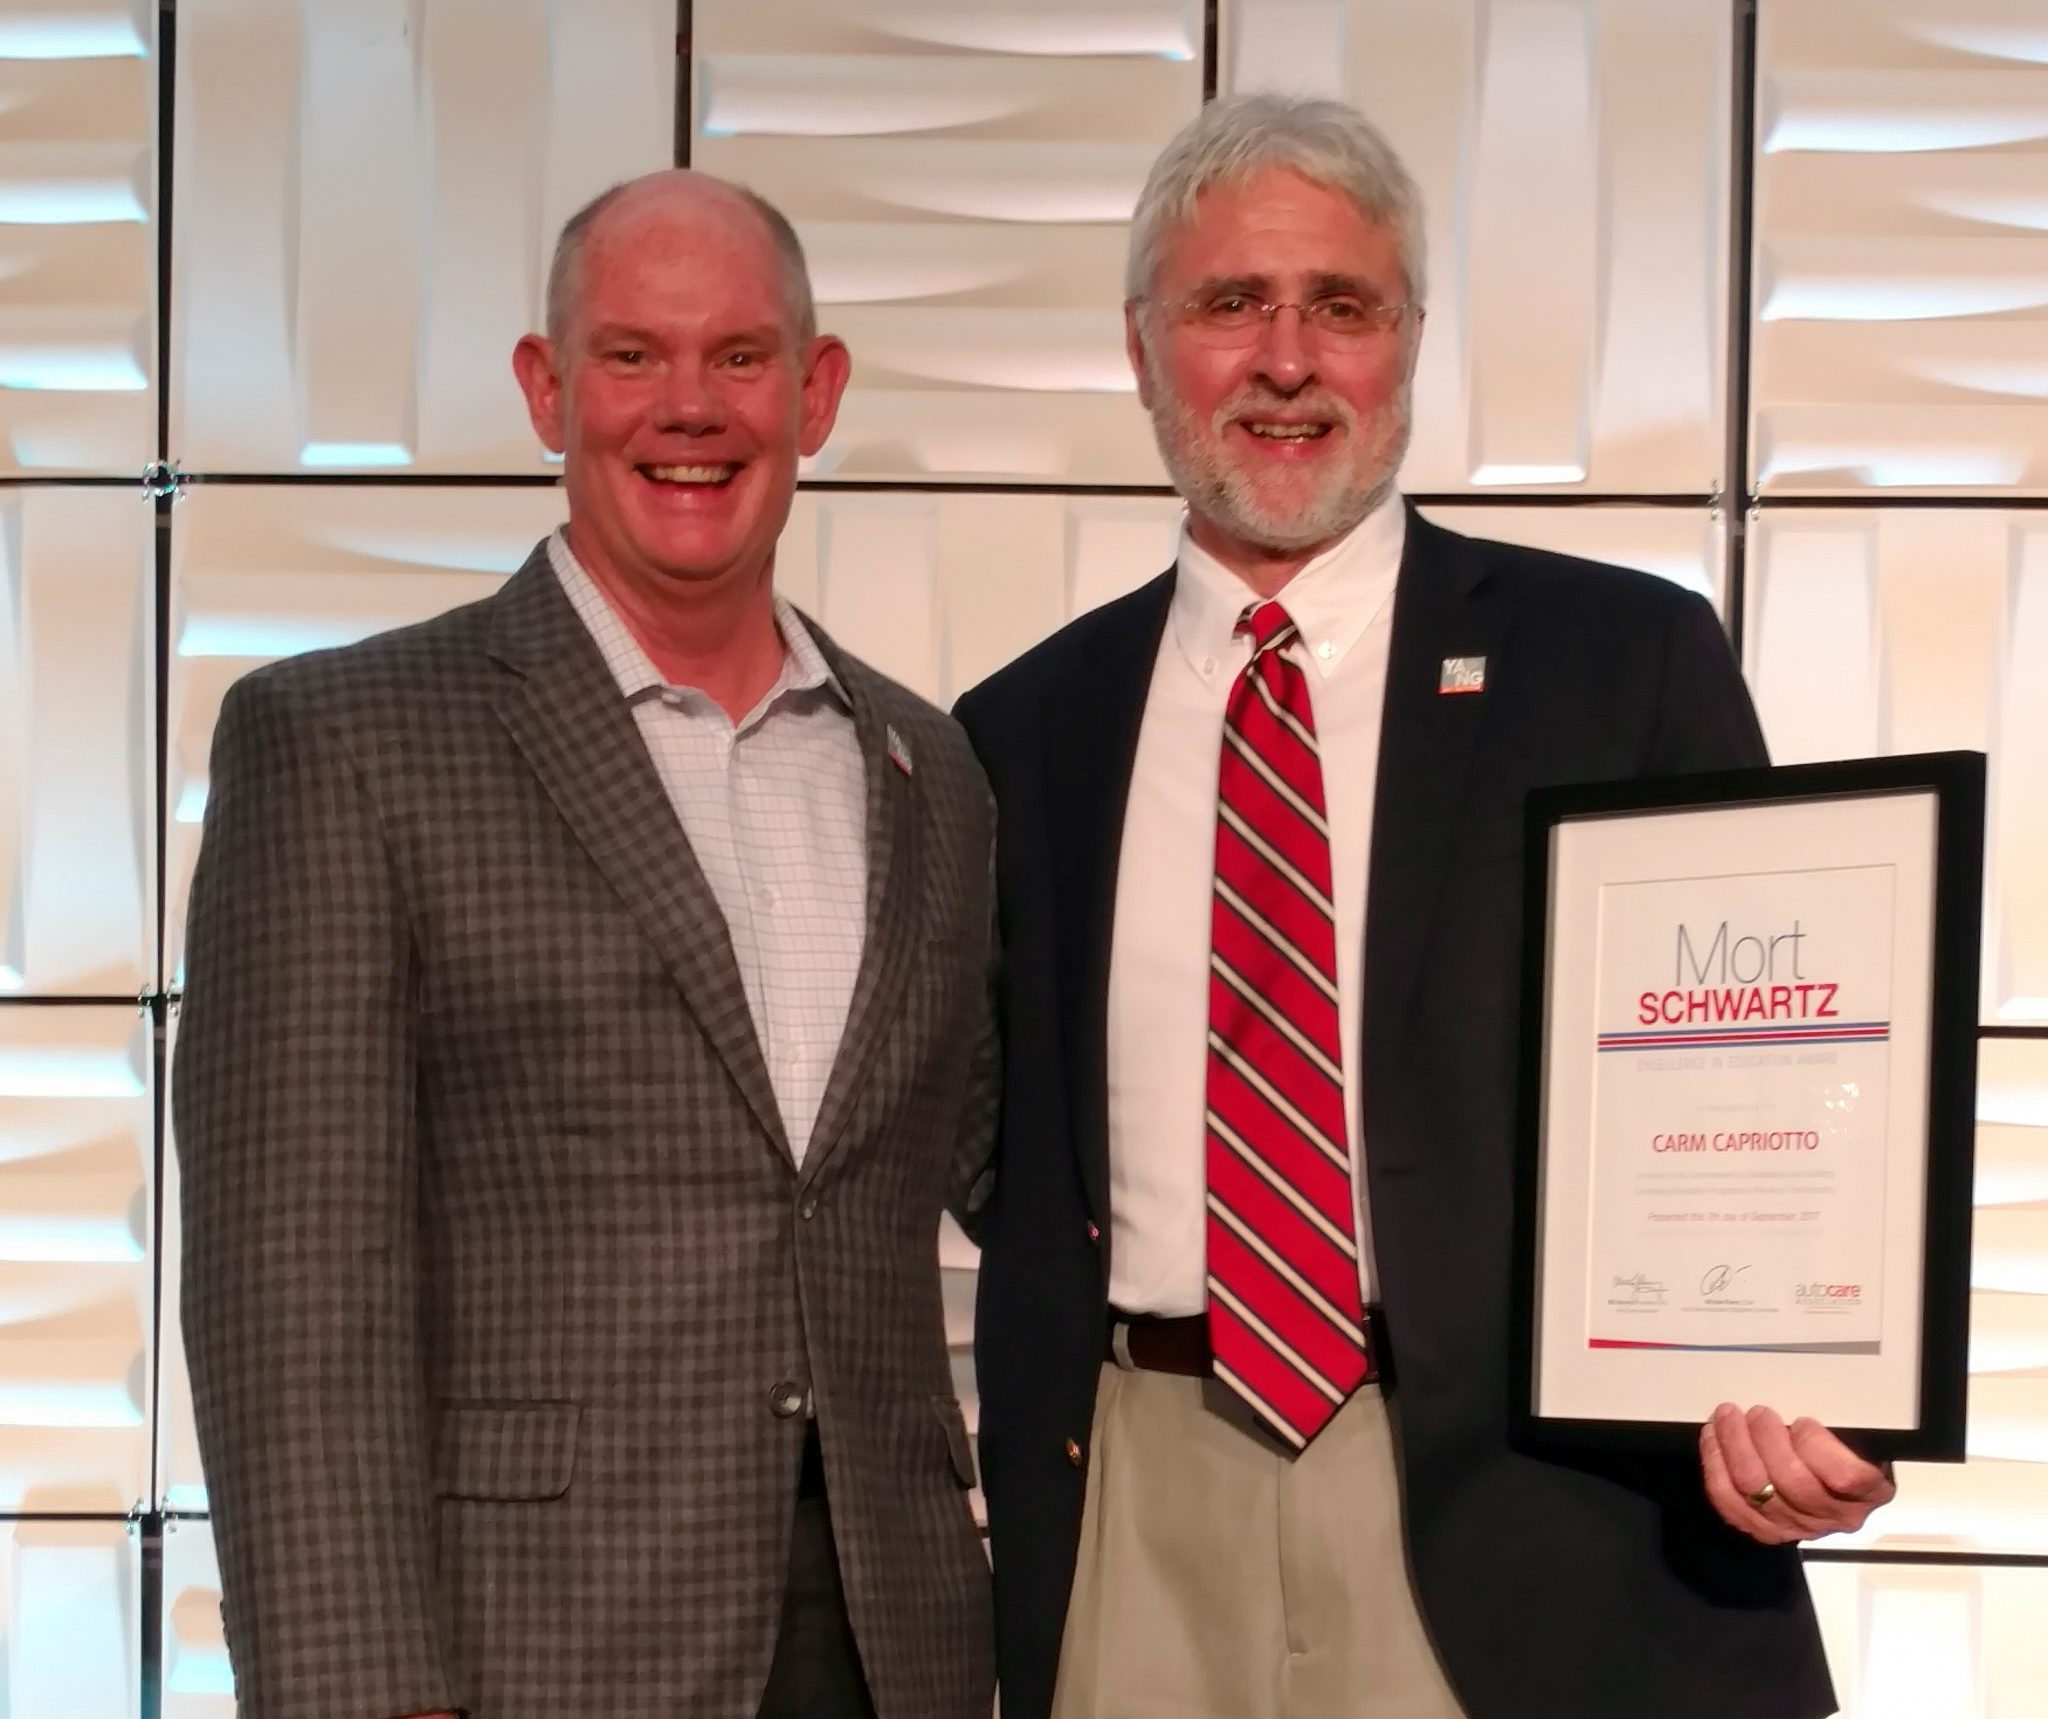 Bill Hanvey, Auto Care Association President and CEO presents Carm Capriotto the 2017 Mort Schwartz Excellence In Education Award In San Francisco at Fall Leadership Days in September 2017.